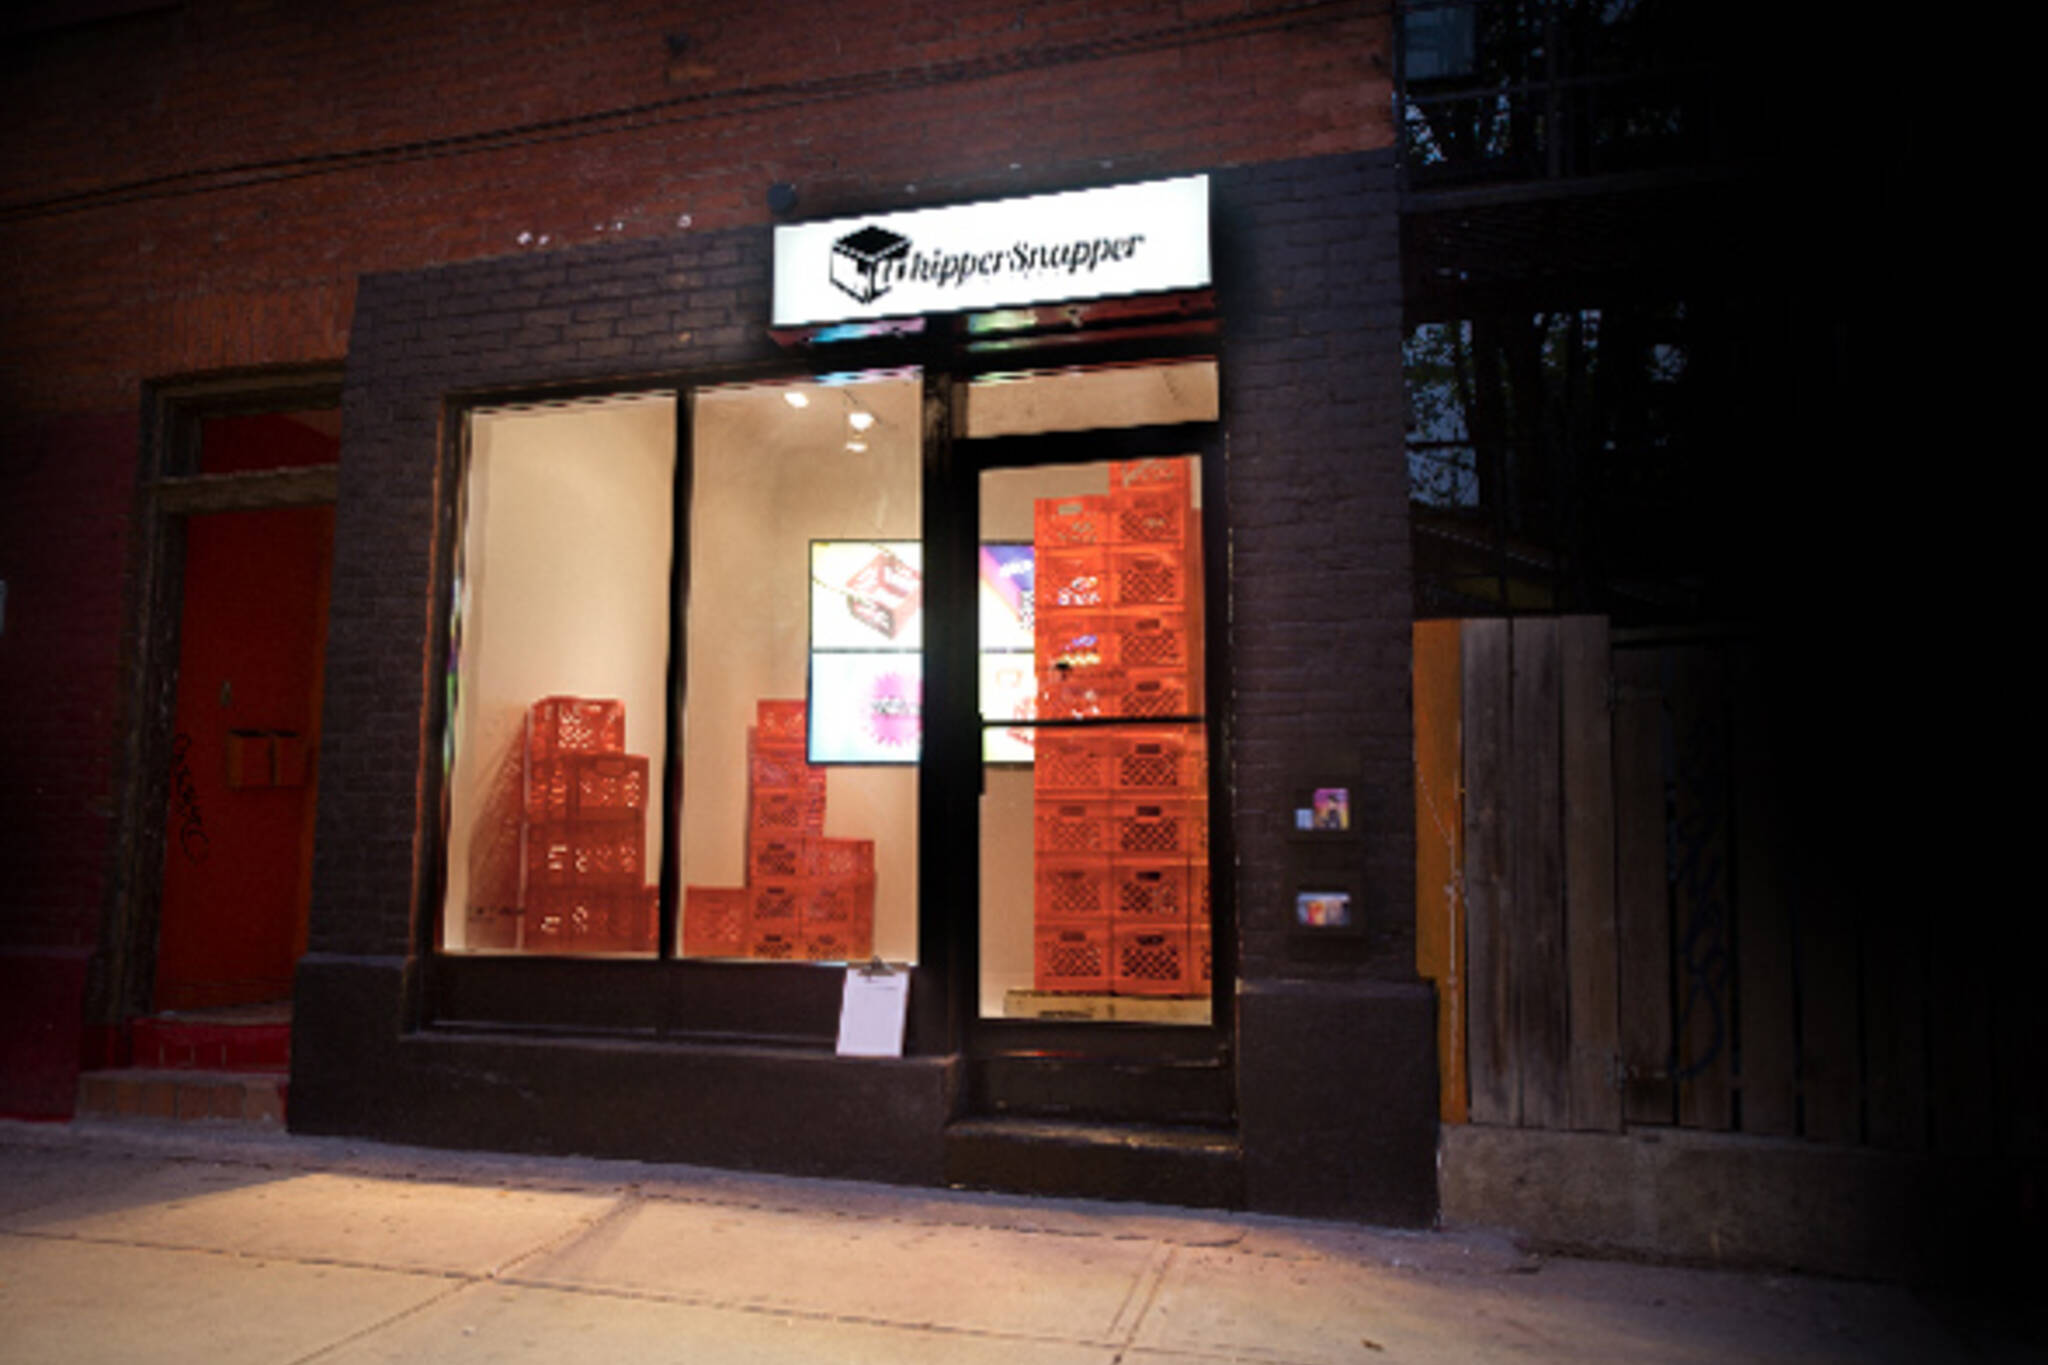 Whippersnapper Gallery Toronto